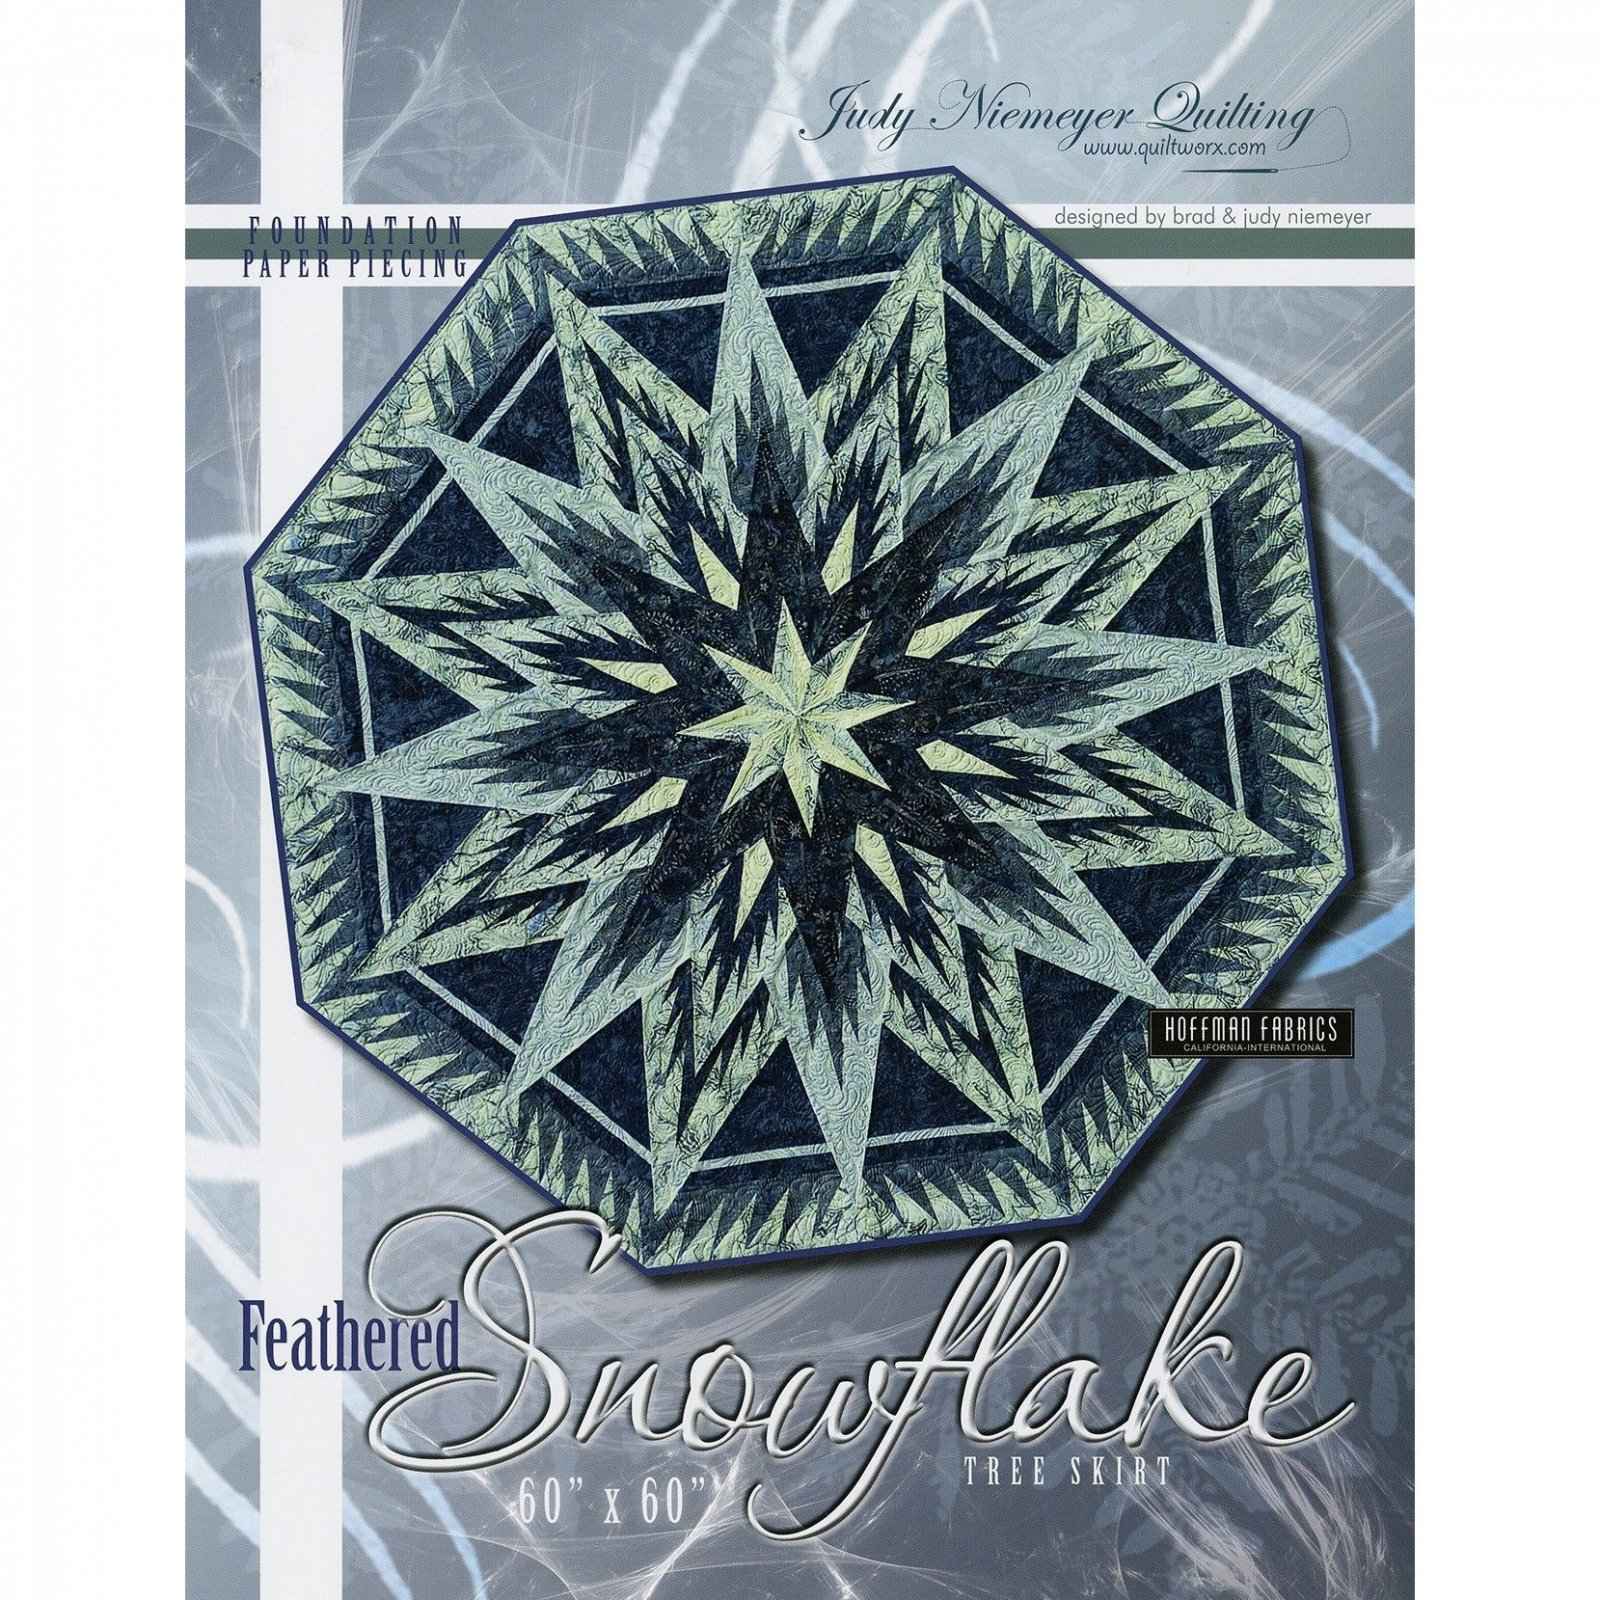 Feathered Snowflake Tree Skirt Pattern